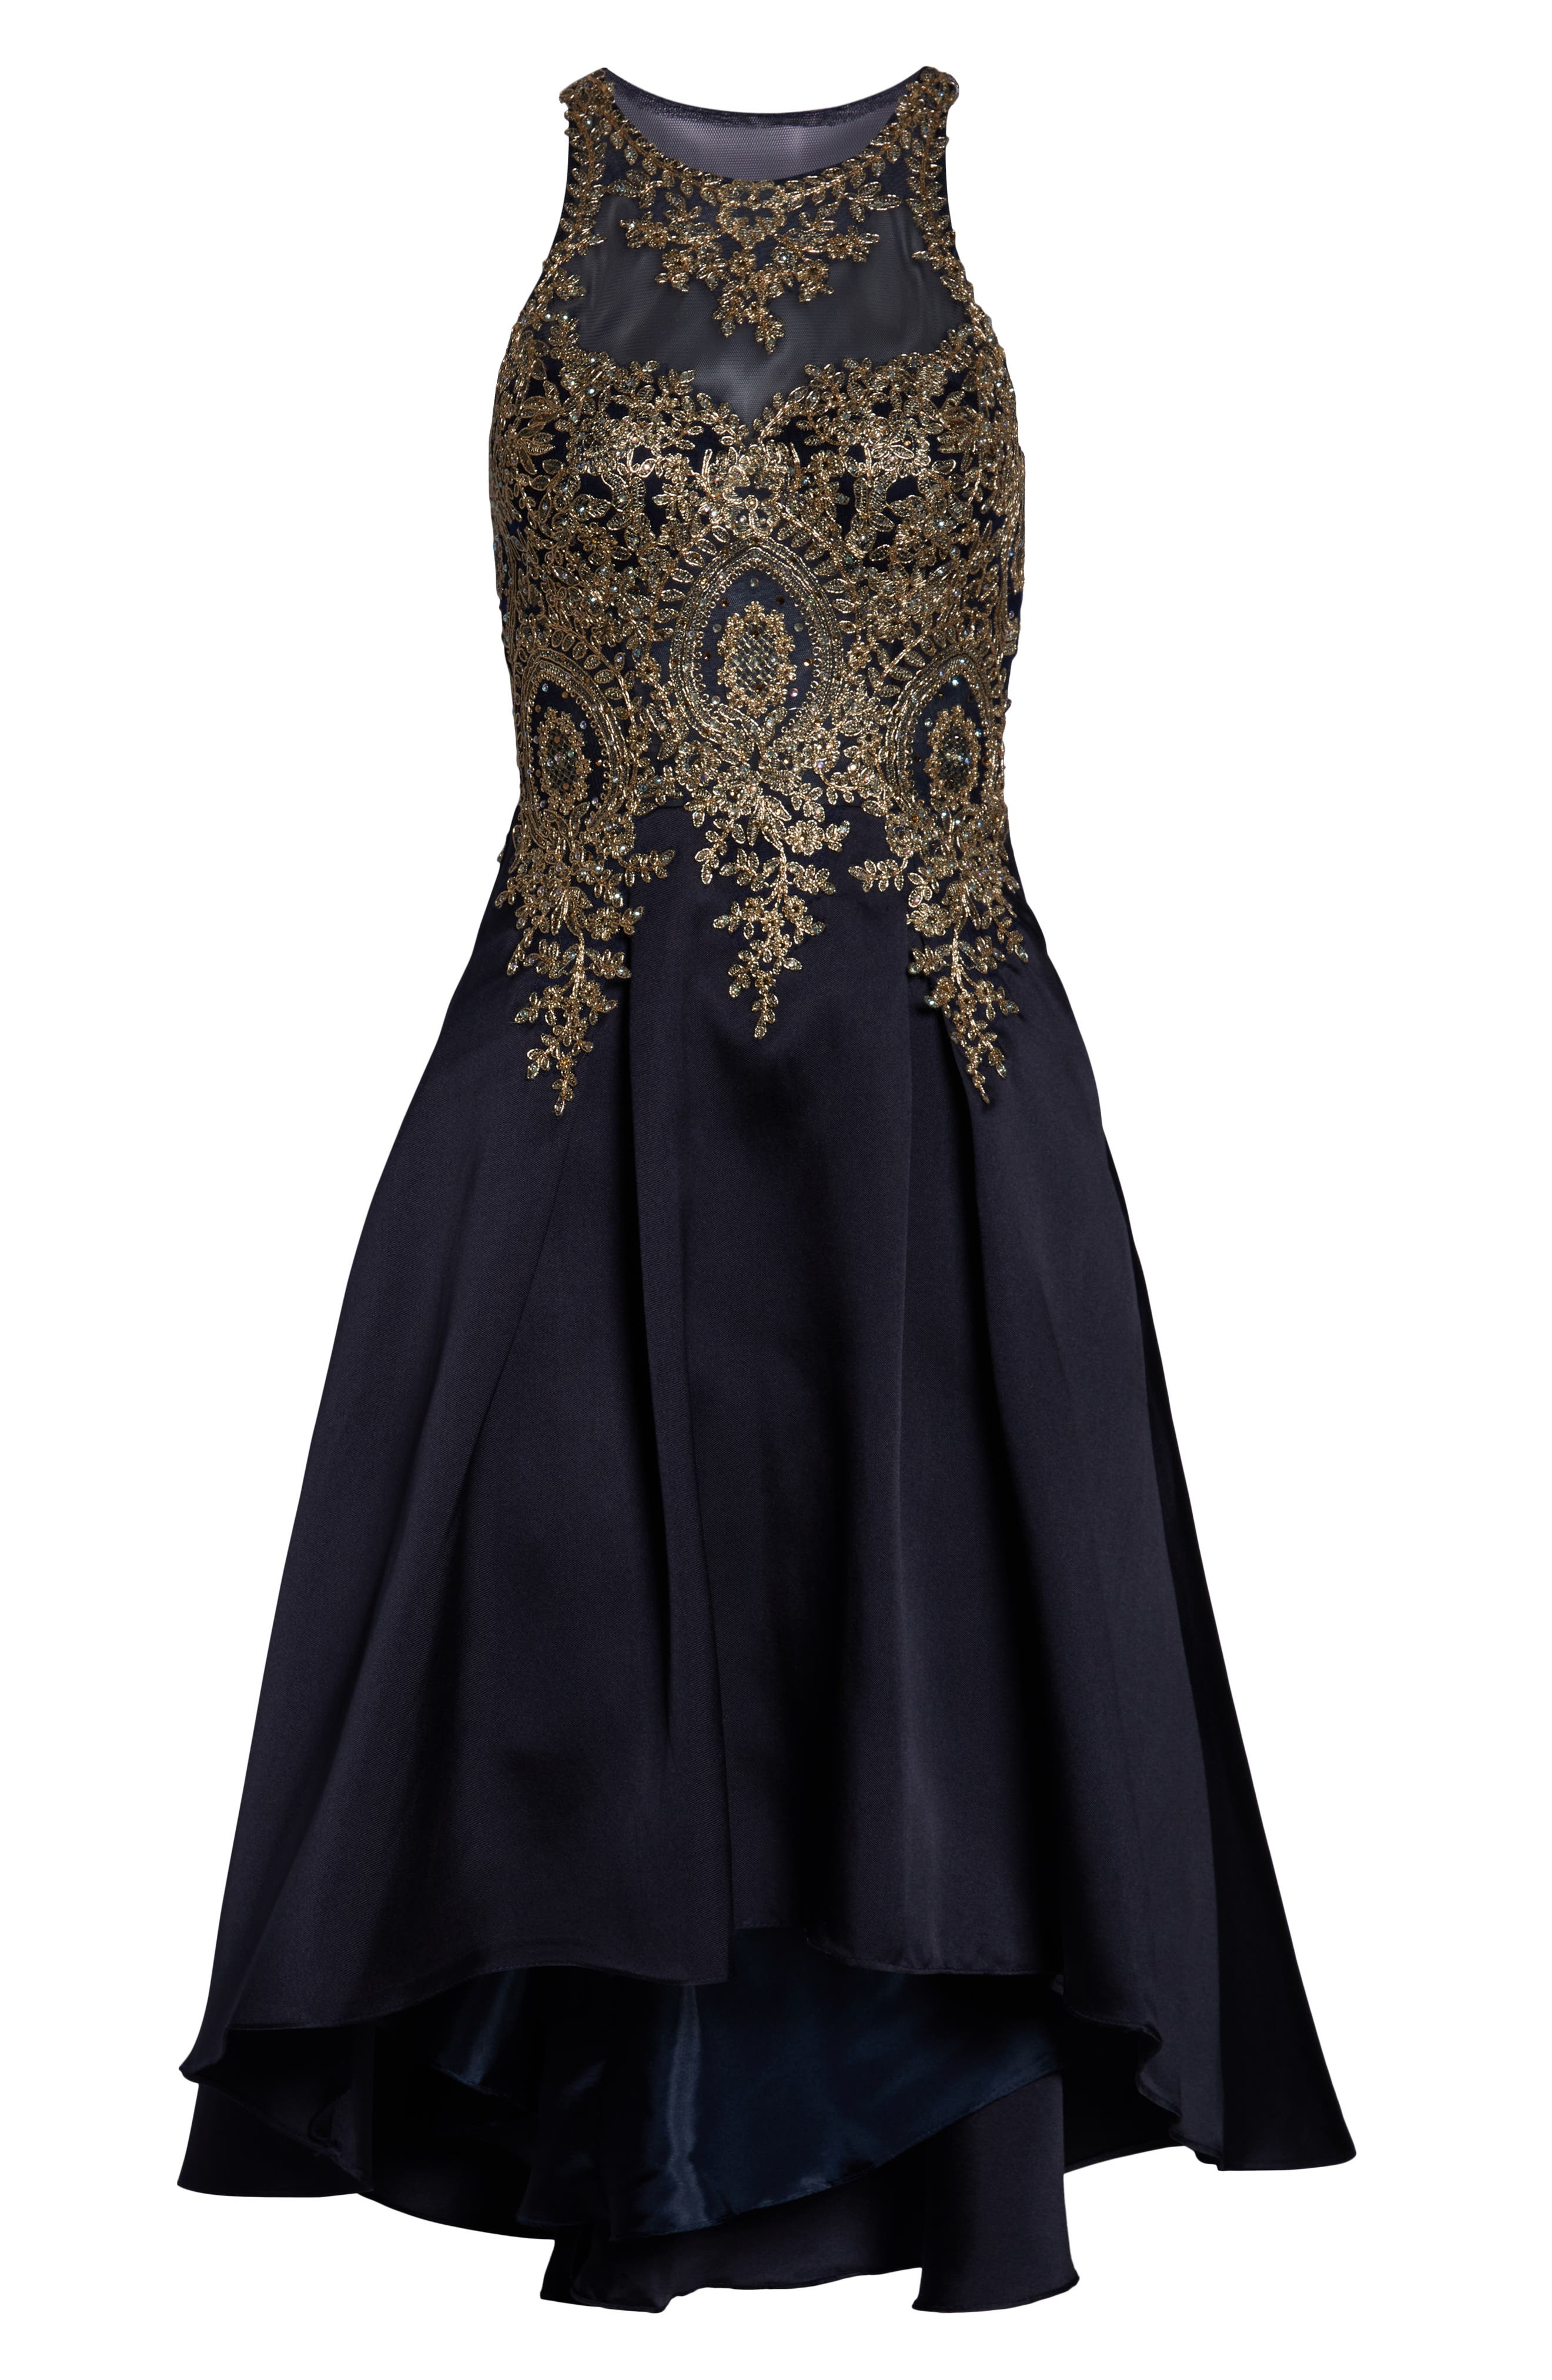 Embroidered High/Low Mikado Cocktail Dress,                             Alternate thumbnail 3, color,                             NAVY/ GOLD